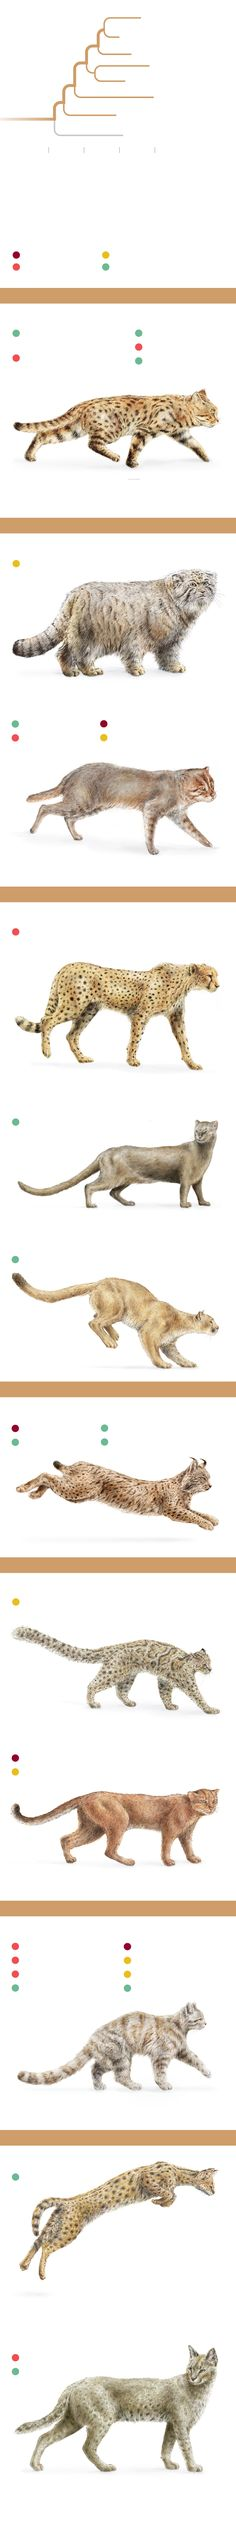 Elusive, obscure, and eclipsed in popularity by their larger cousins, small cats are amazing, high-performance predators.